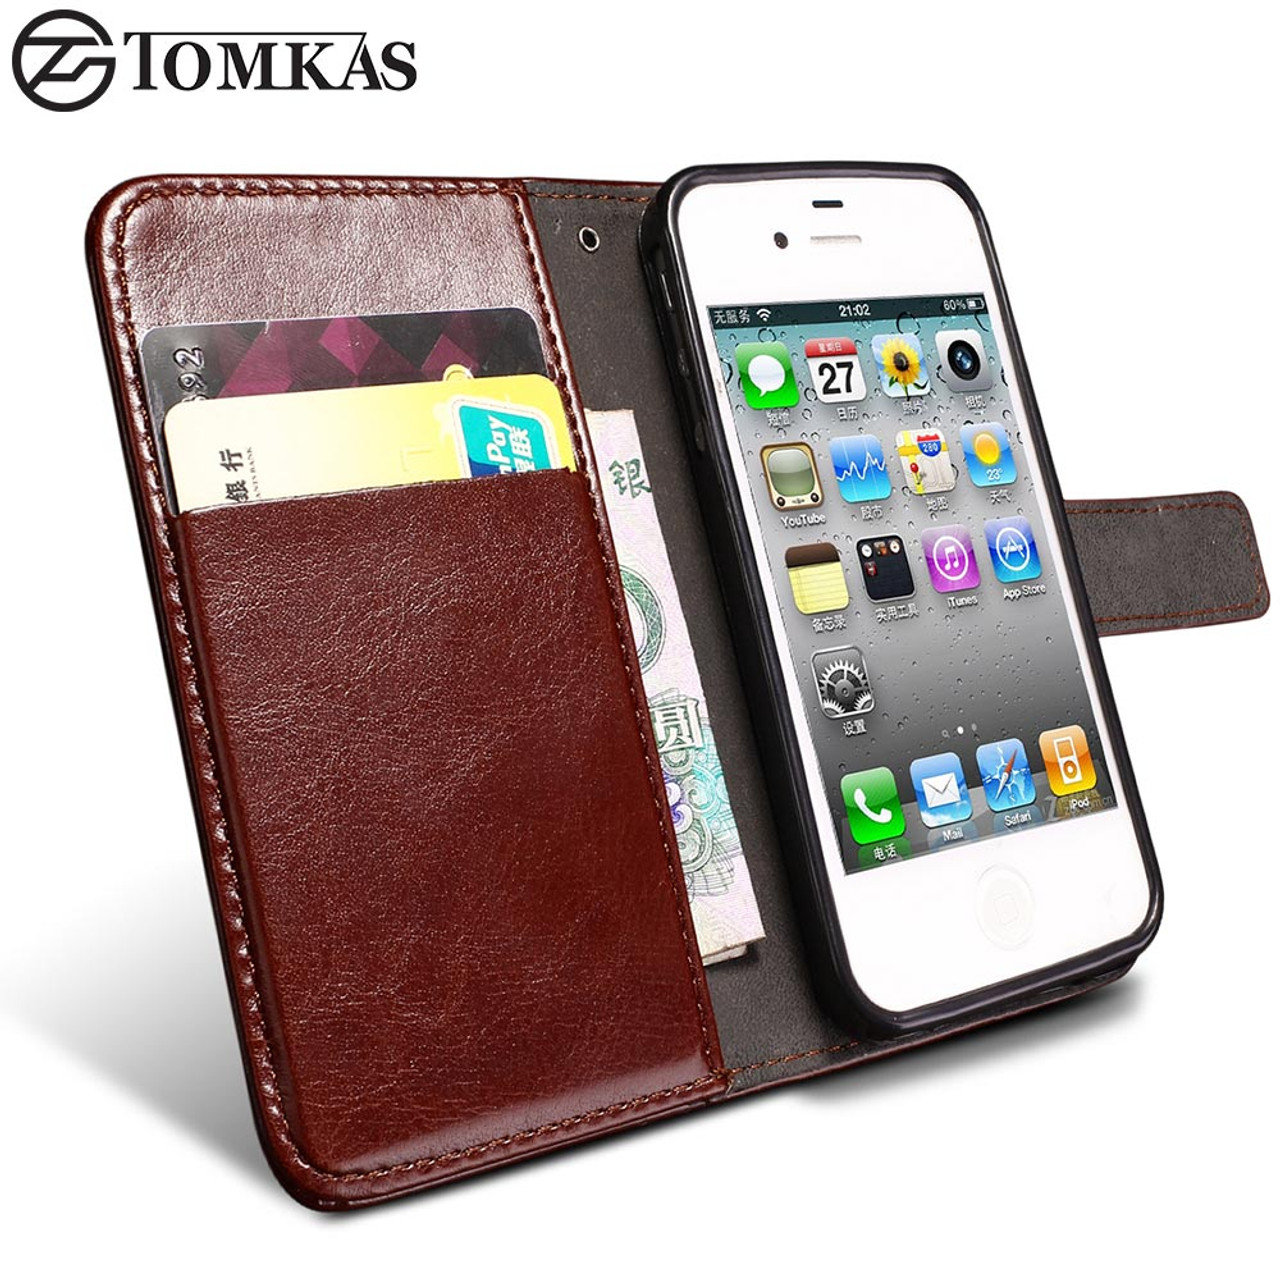 purchase cheap db5f1 73c14 TOMKAS 4S Flip Wallet PU Leather Case For iPhone 4 4S Cover Vintage Coque  Phone Bag Cases For Apple iPhone 4S With Card Holders